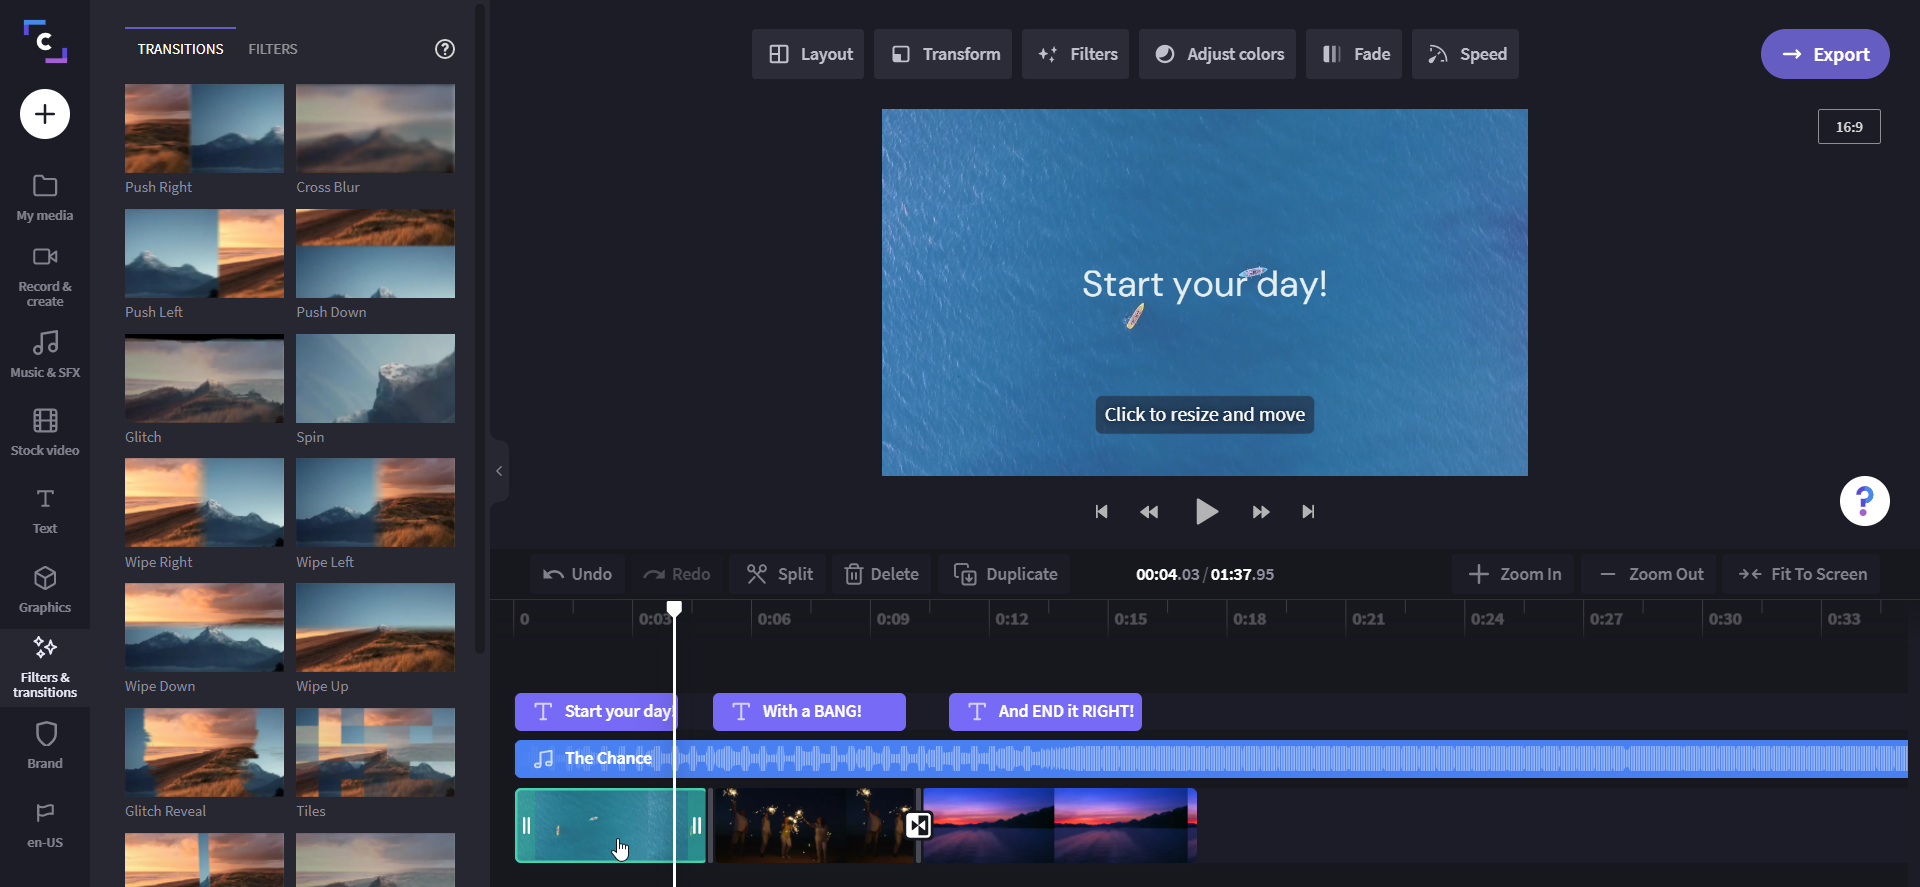 An image of a video project in Clipchamp video editor with the transition menu open.